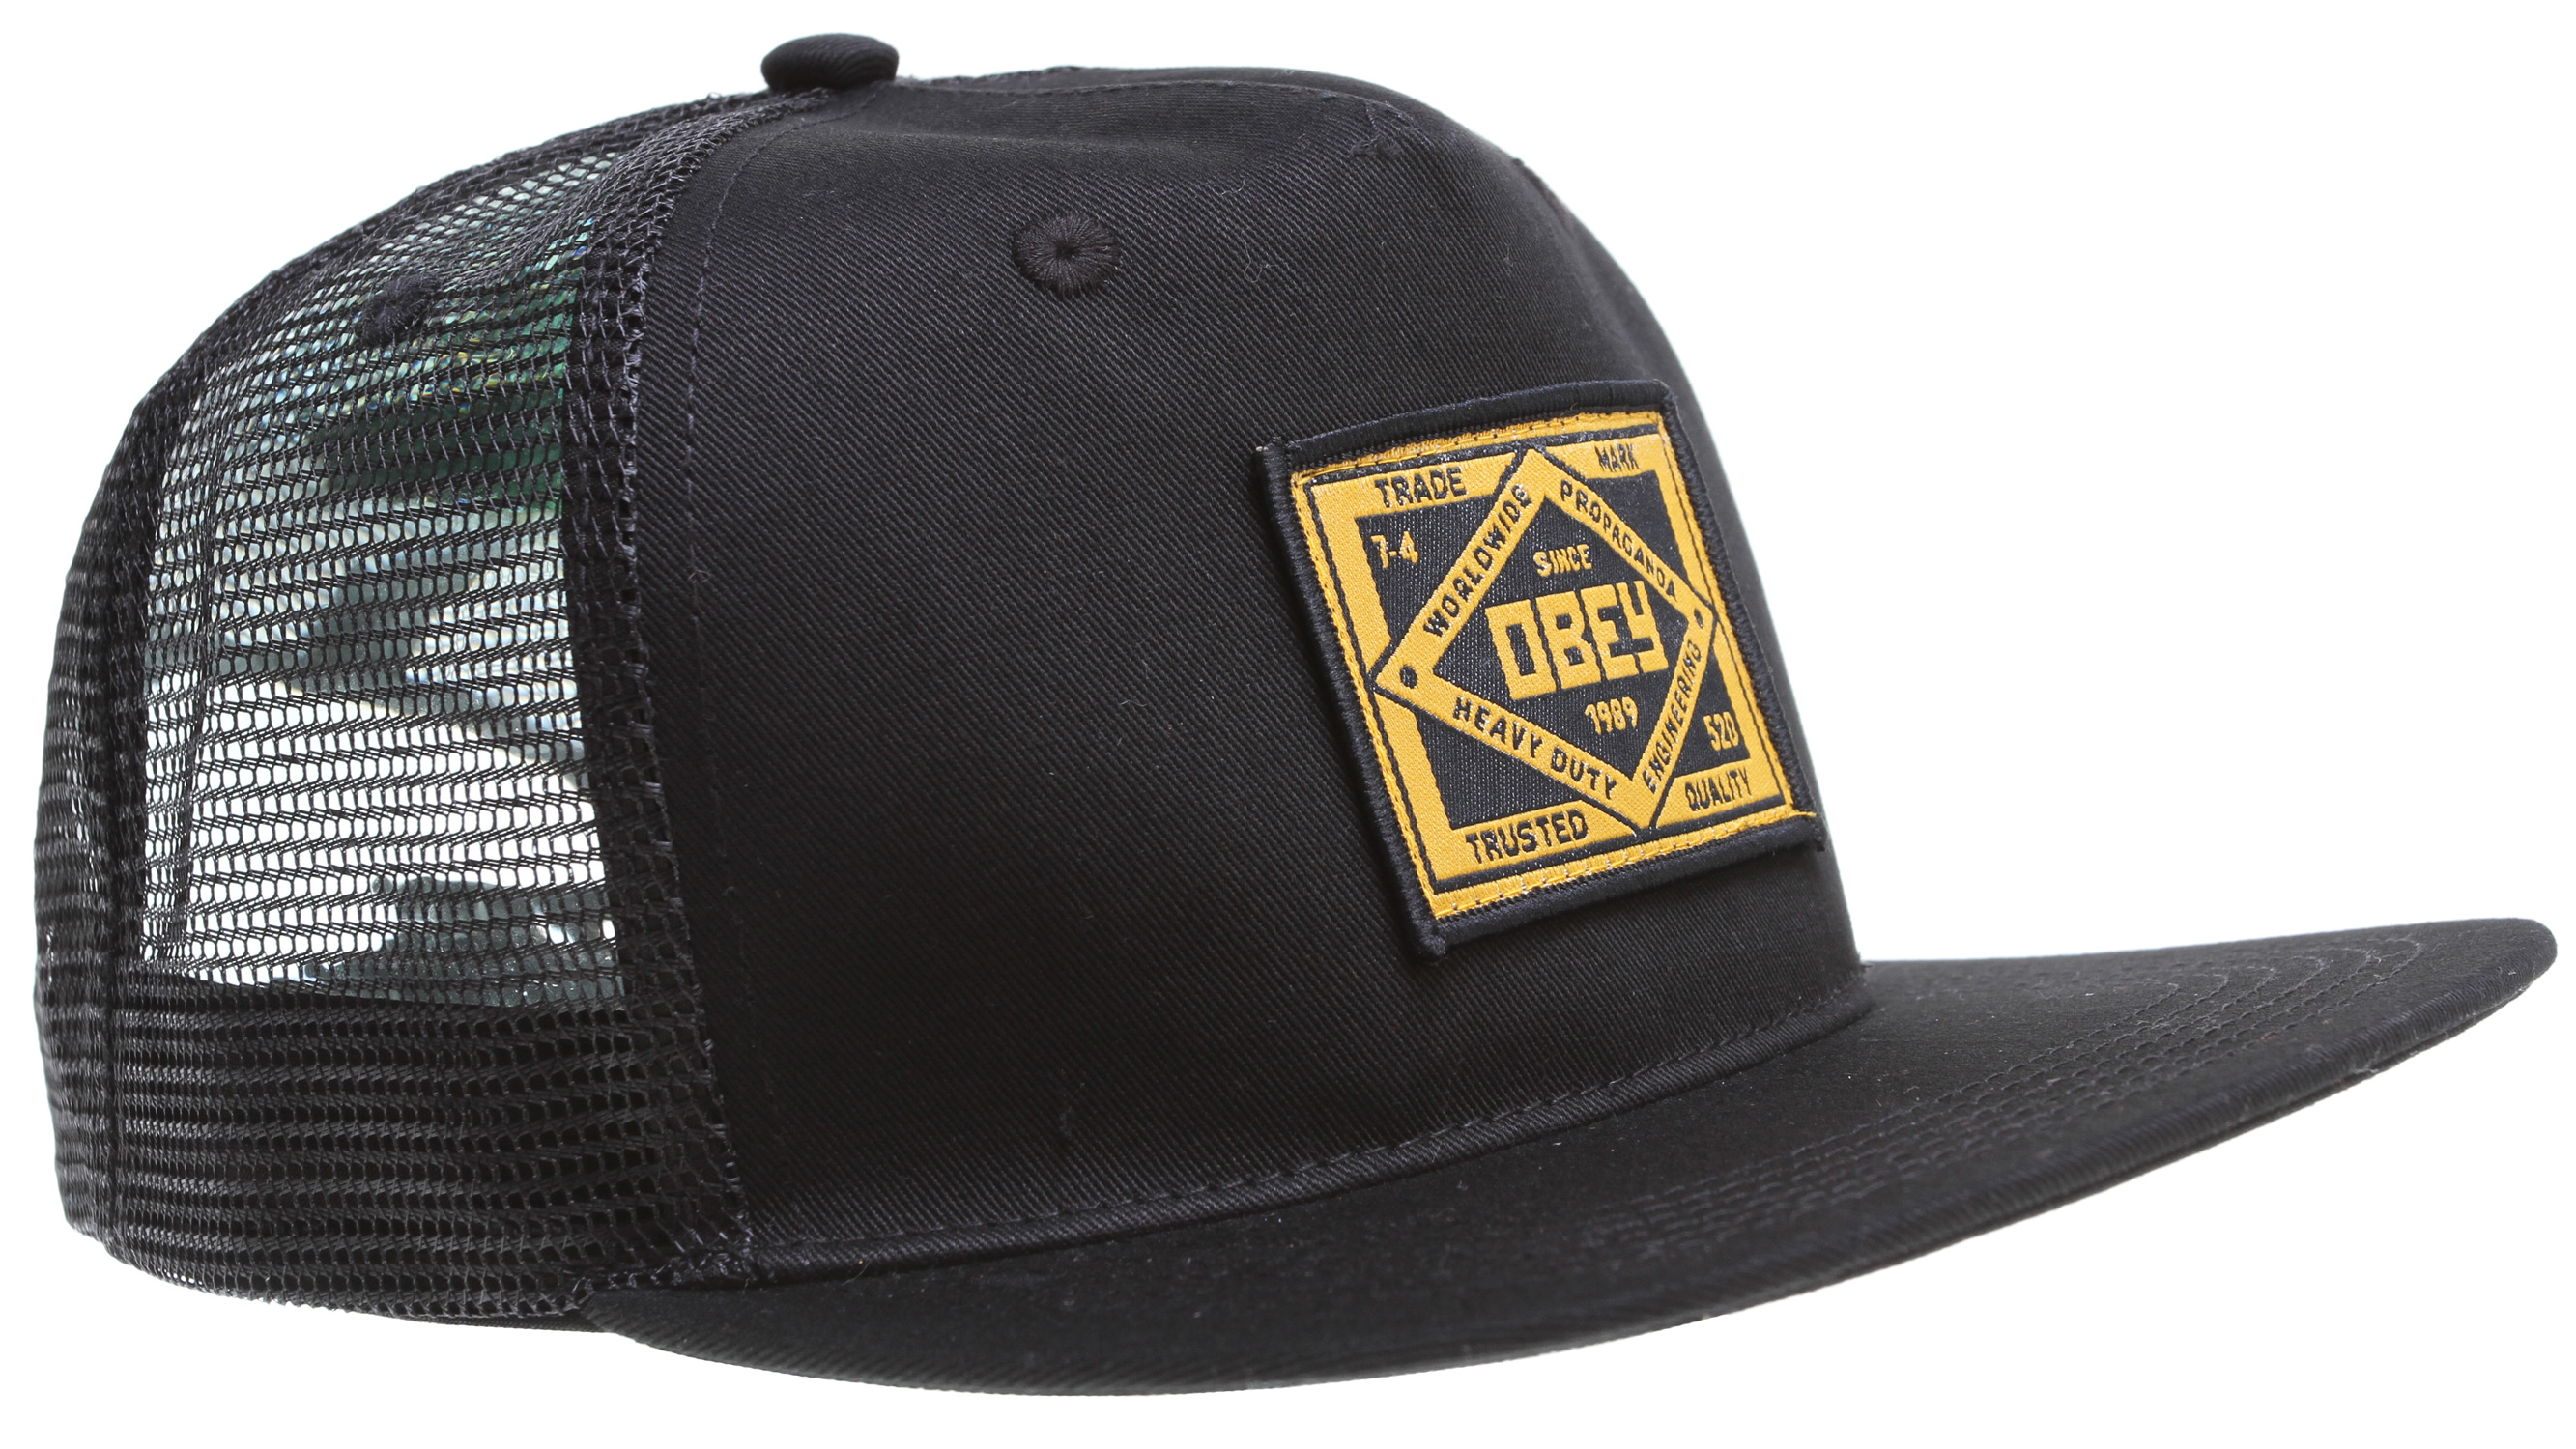 Key Features of the Obey Trademark Trucker Cap: Mesh snapback cap with custom trademark patch on front 60% Cotton / 40% Polyester - $23.95